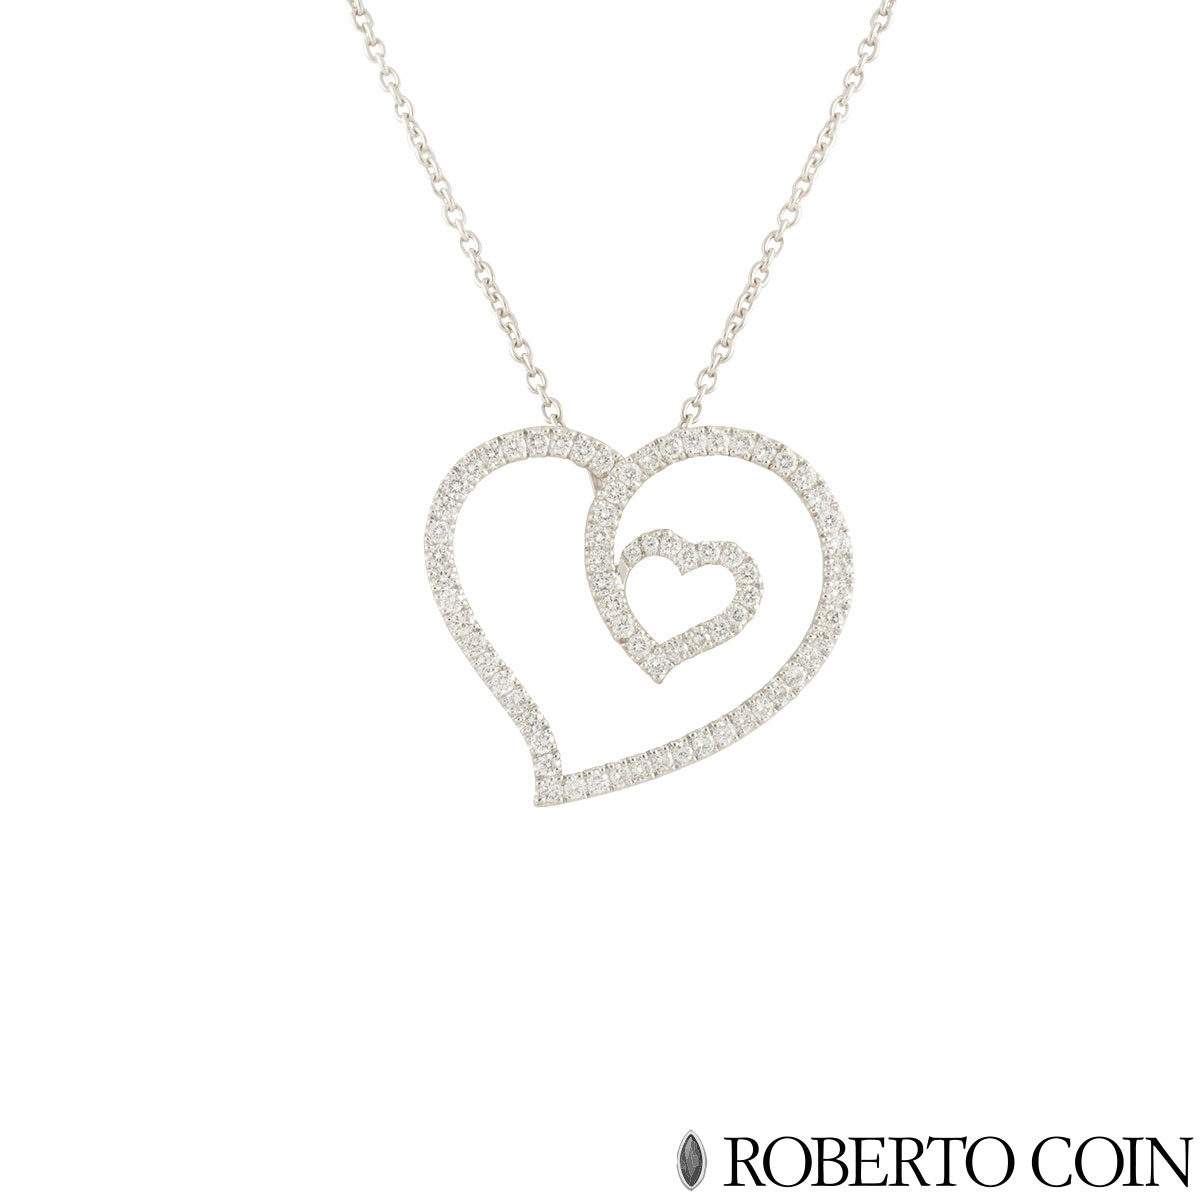 Roberto Coin White Gold Diamond Heart Pendant 0.96ct G/VS